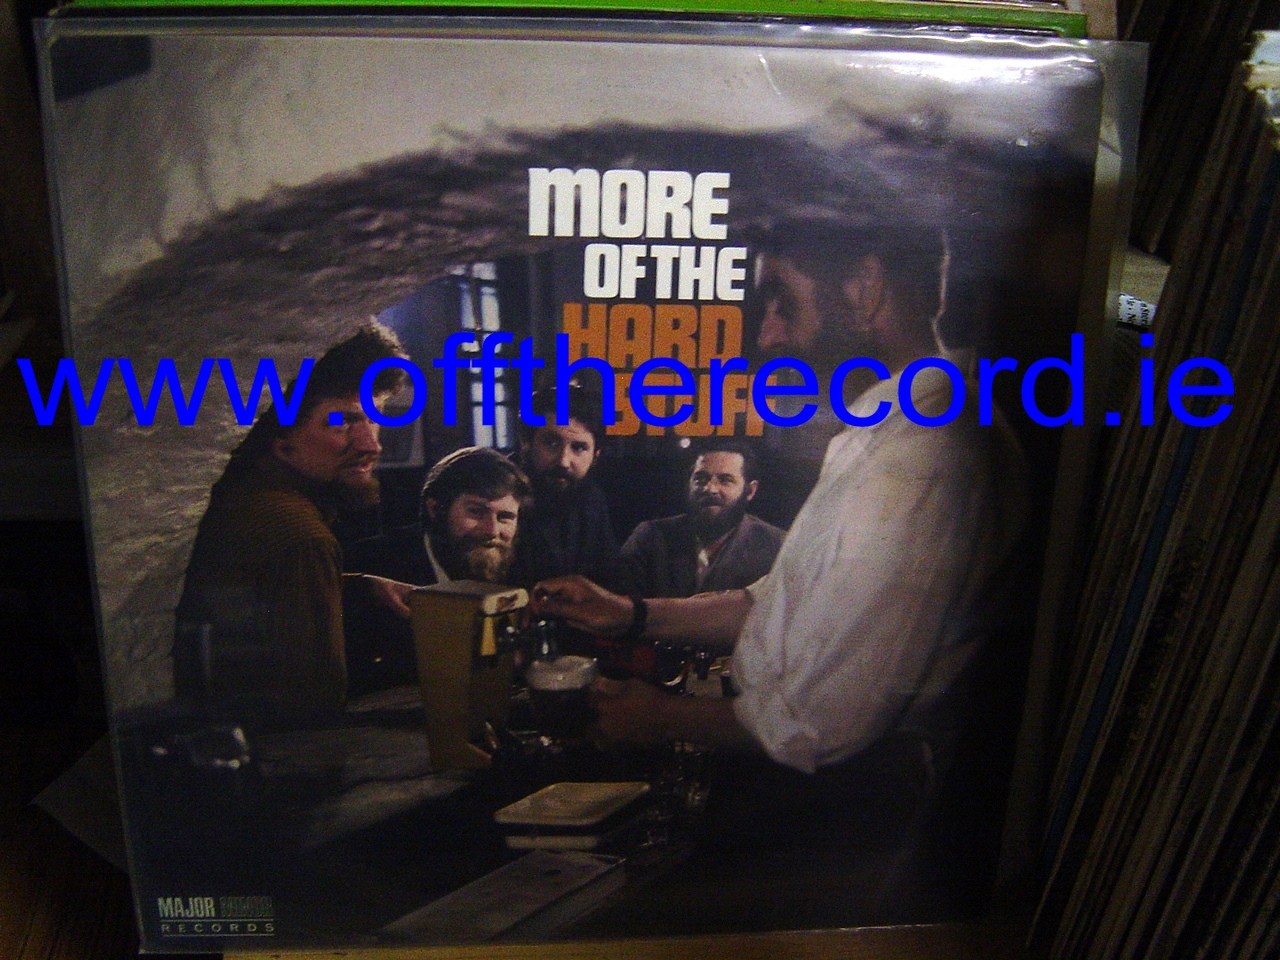 The Dubliners - More of the Hard Stuff - Major Minor Records